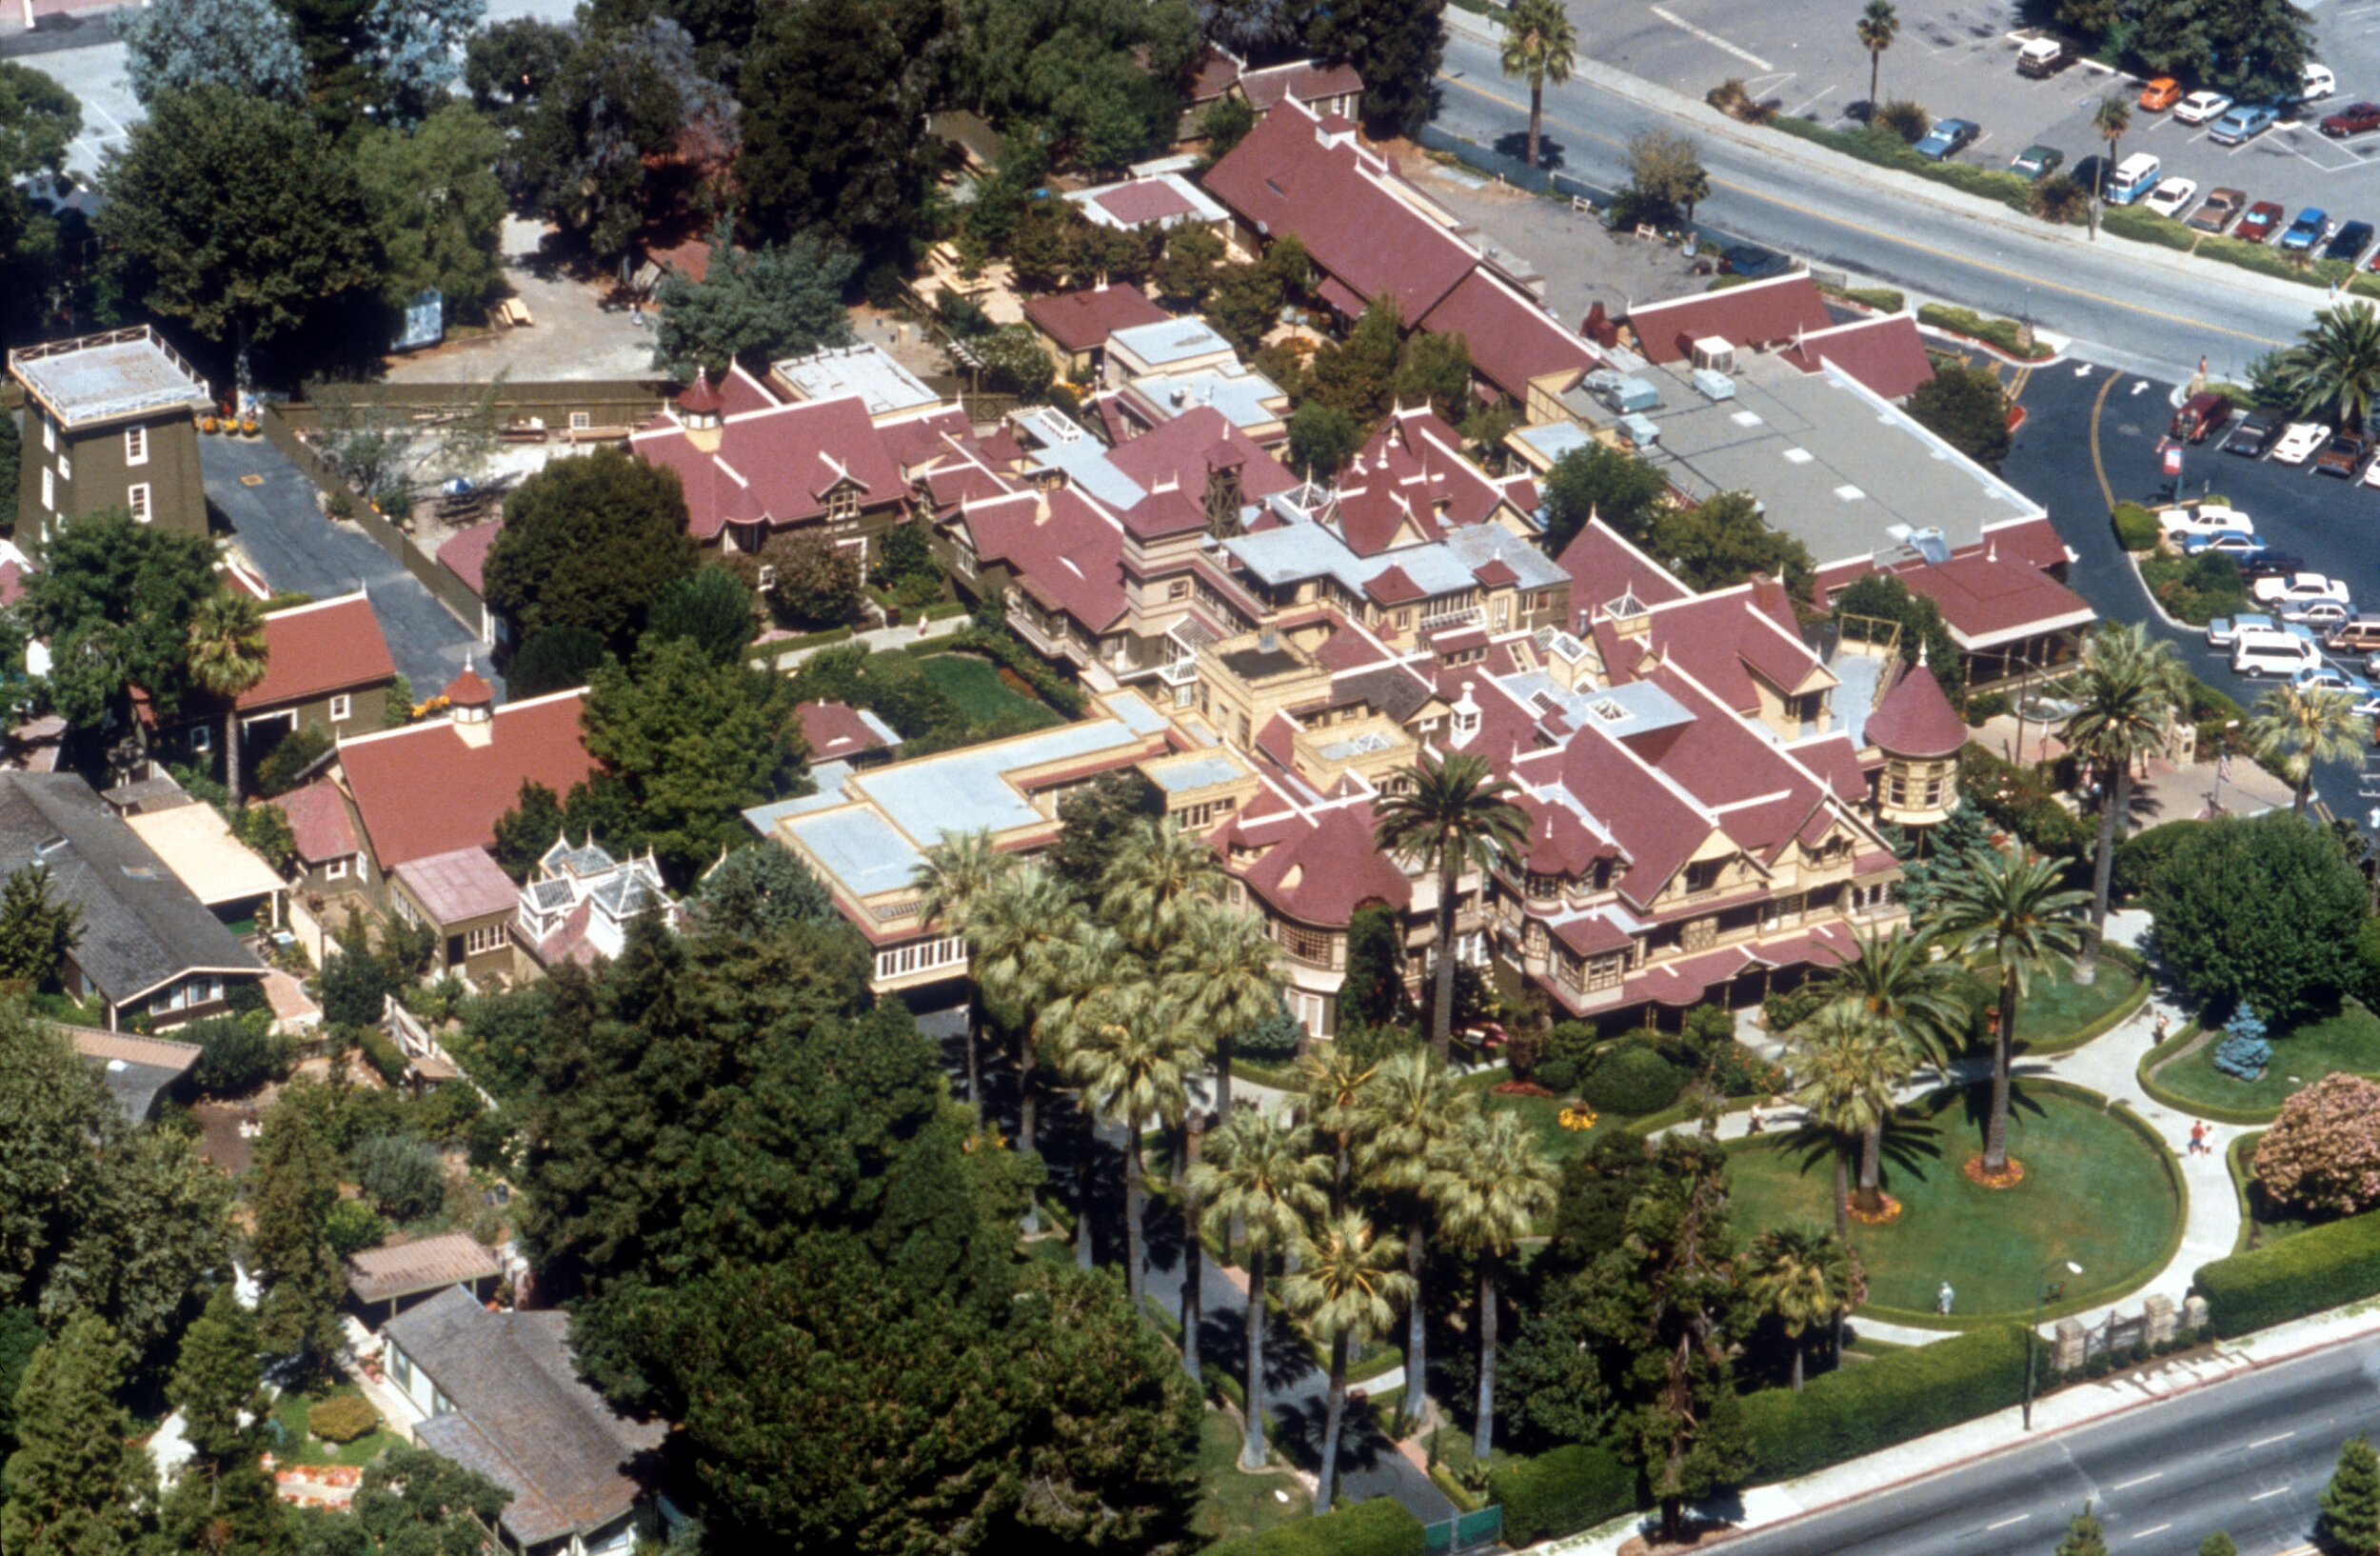 Aerial view of the Winchester Mystery House in San Jose, CA